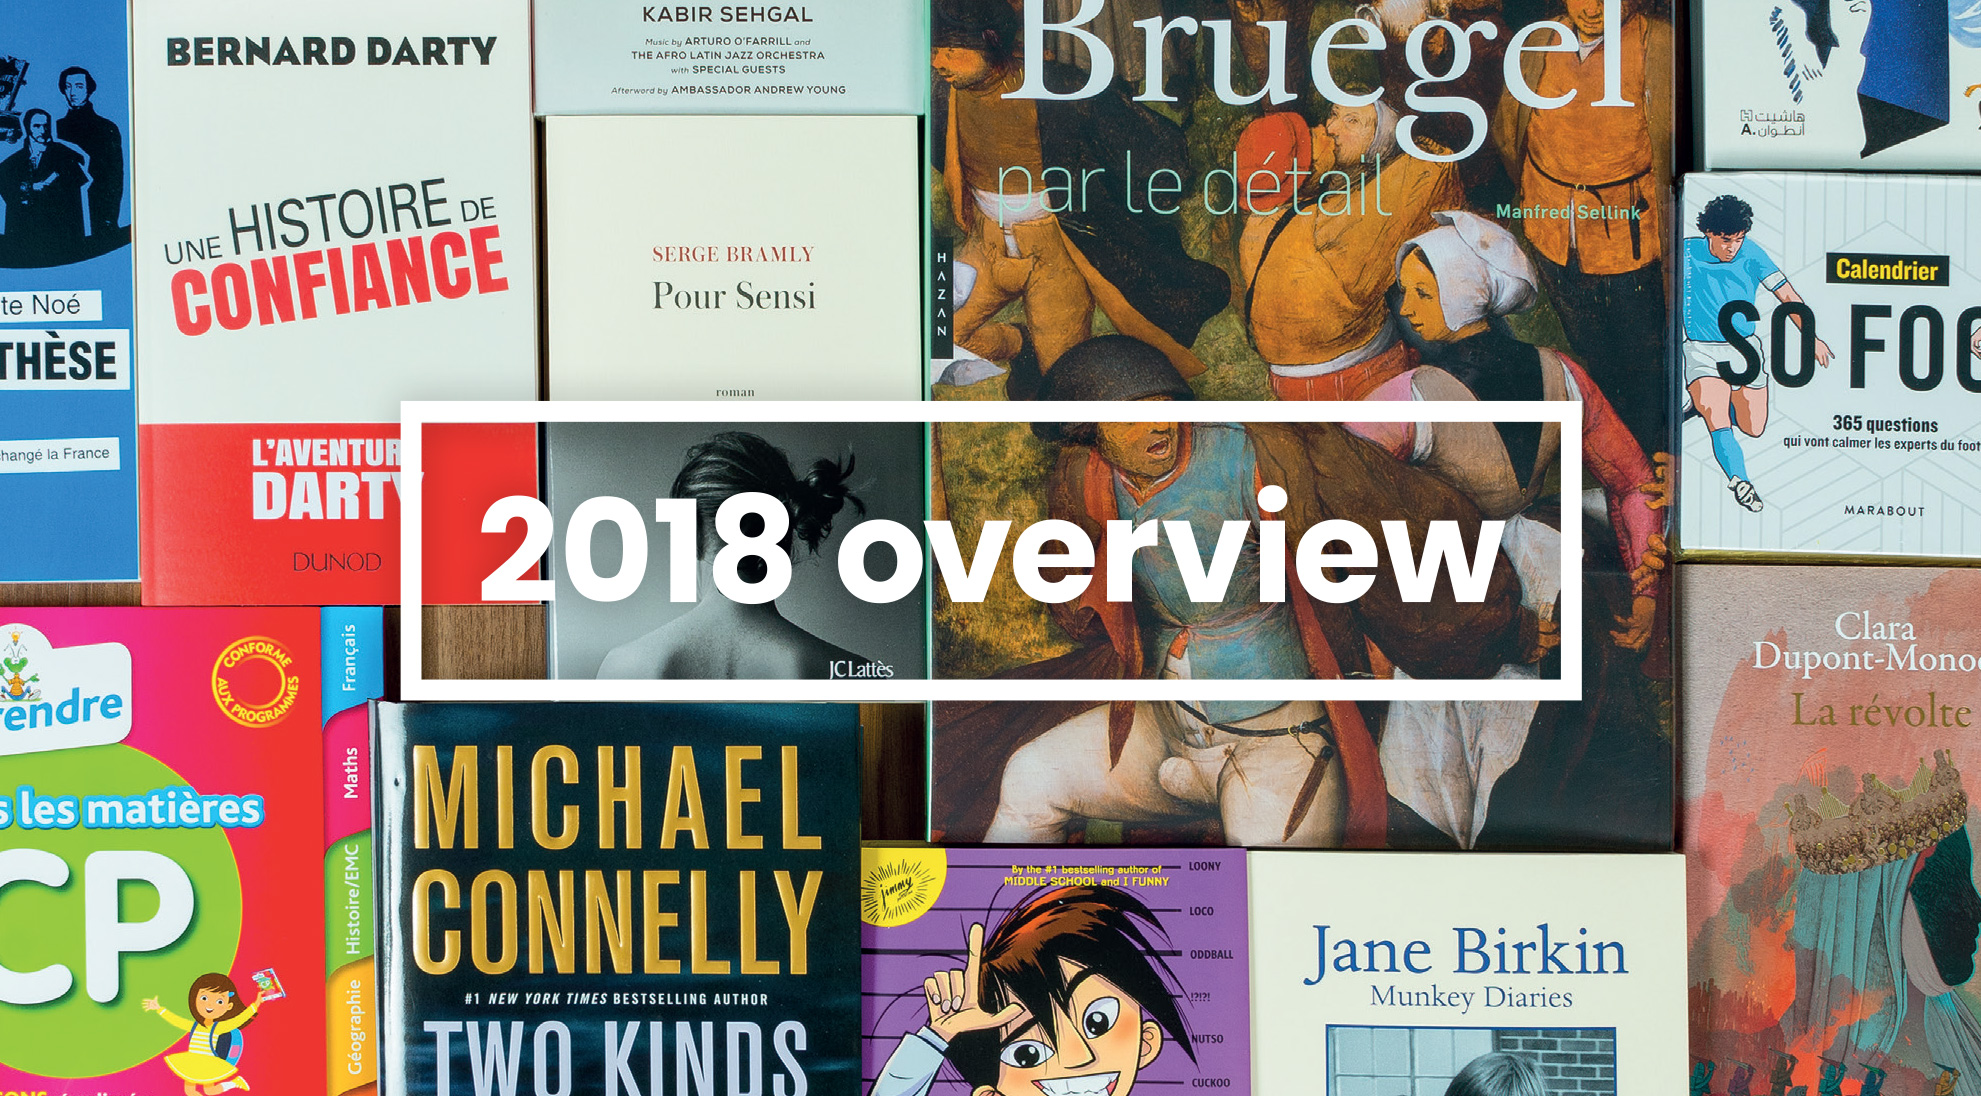 Lagardère Publishing: 2018 Overview